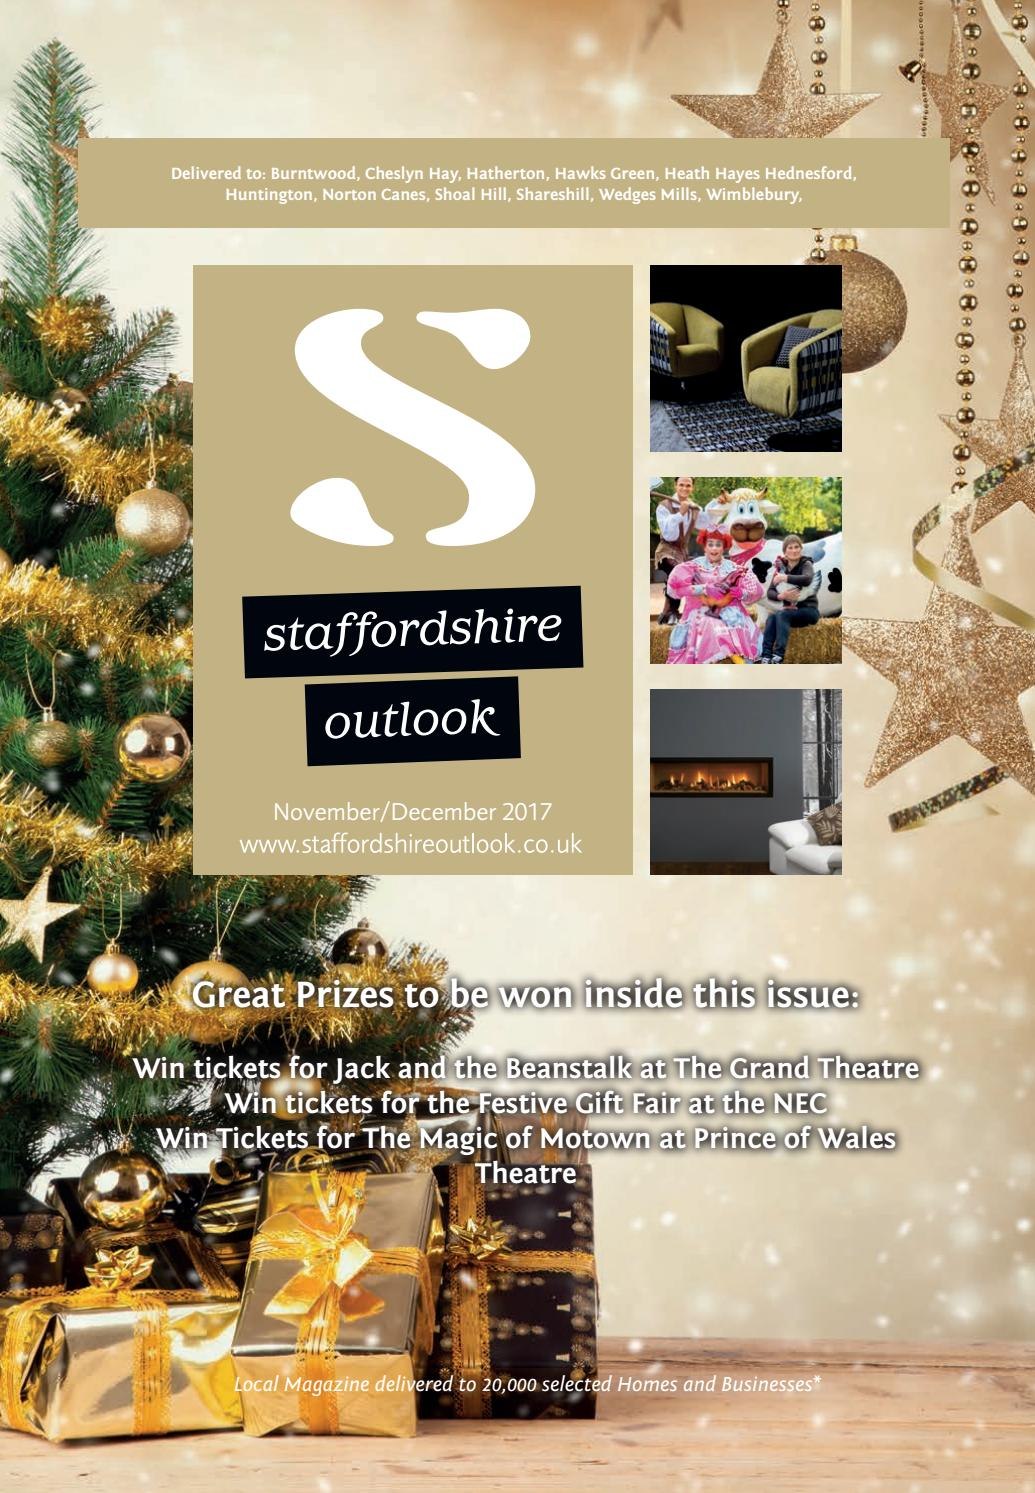 Staffordshire Outlook Nov 17